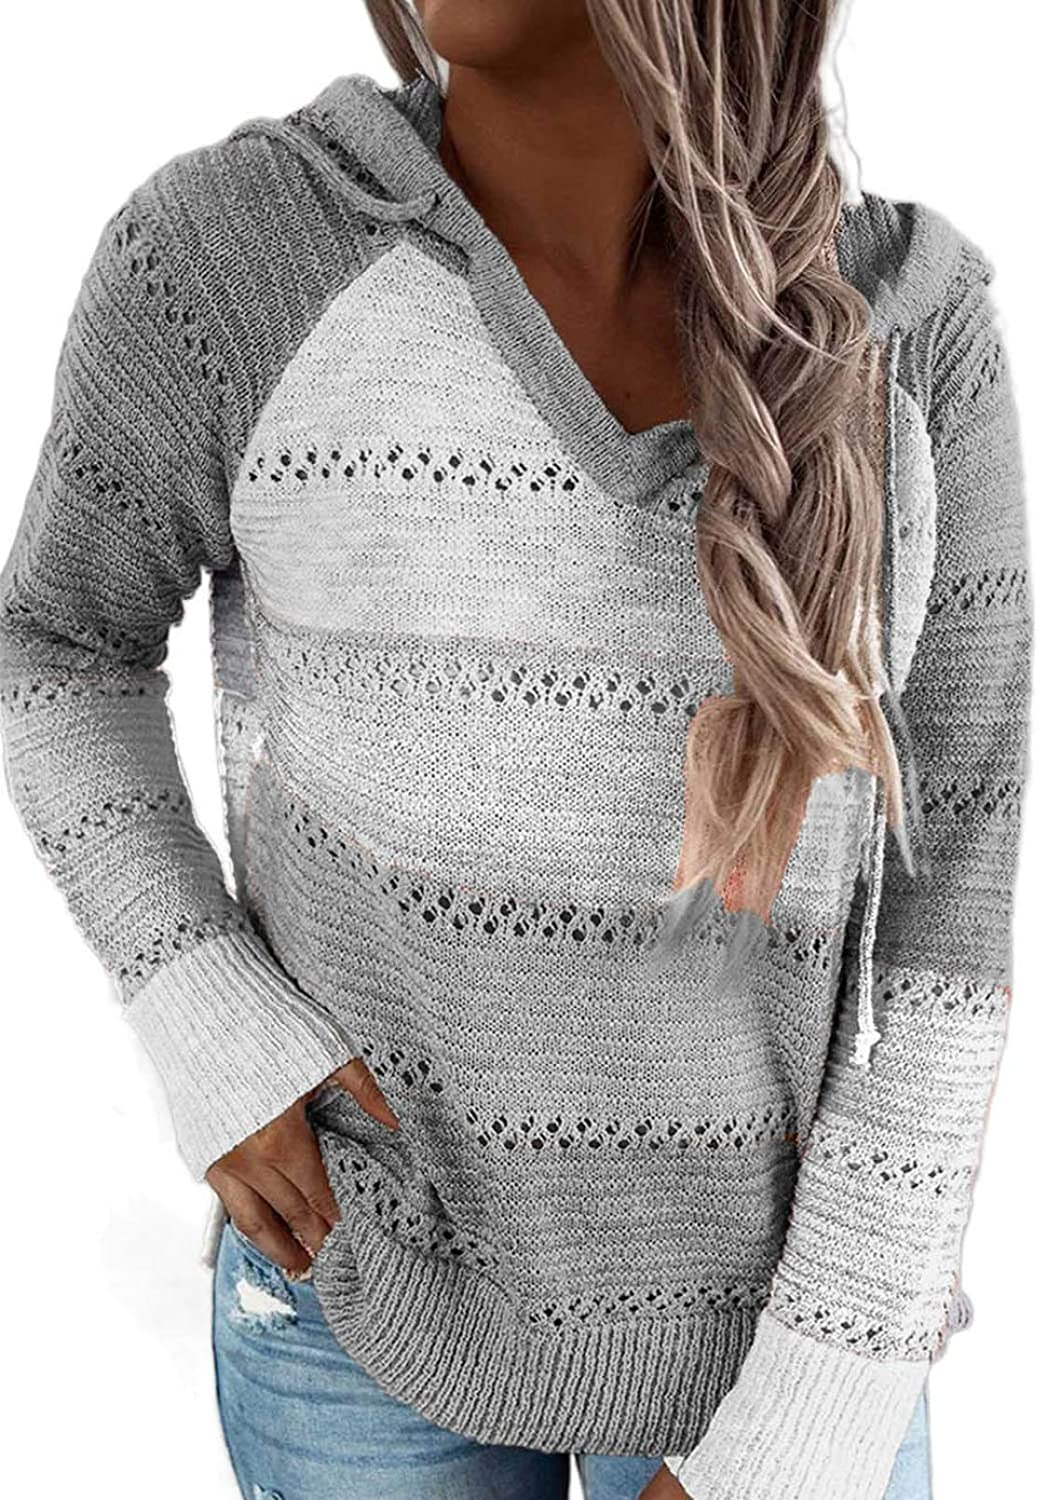 Credence Max 71% OFF Biucly Women's Lightweight Color Block Sweaters Hoodies Knit Loo